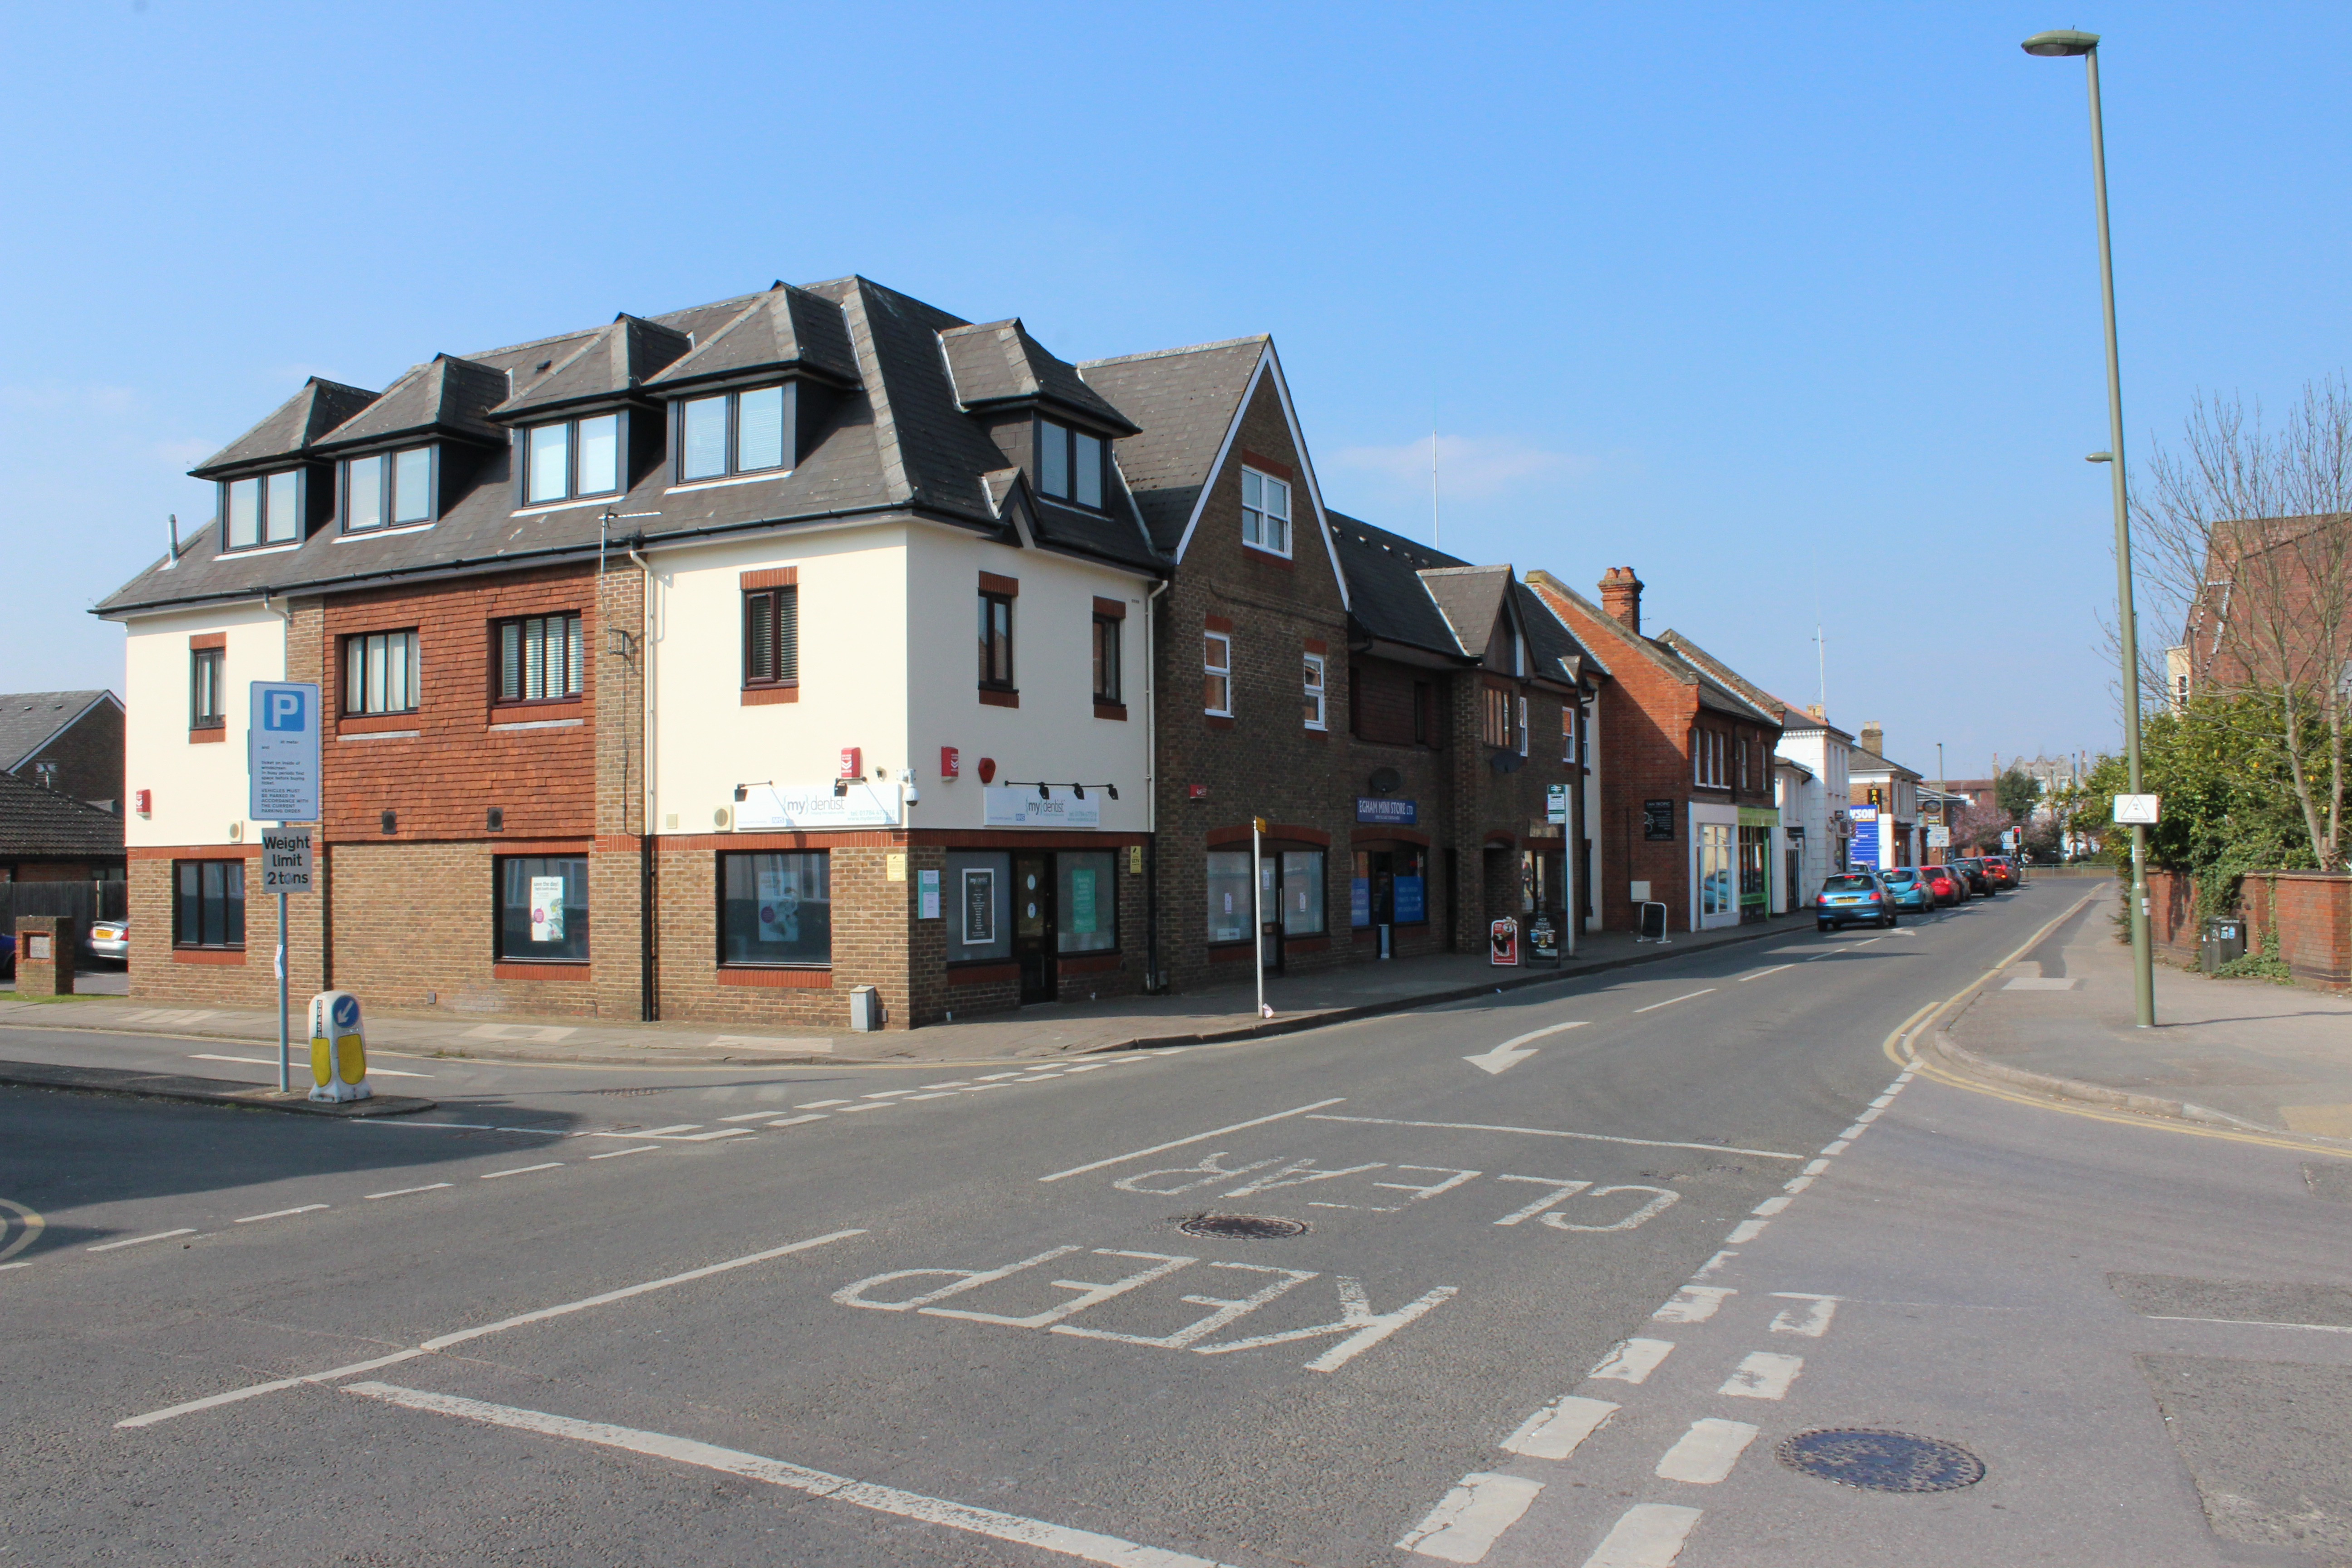 62 Station Road Egham TW20 9LF – Shop To Let Opposite Egham Station and Level Crossing